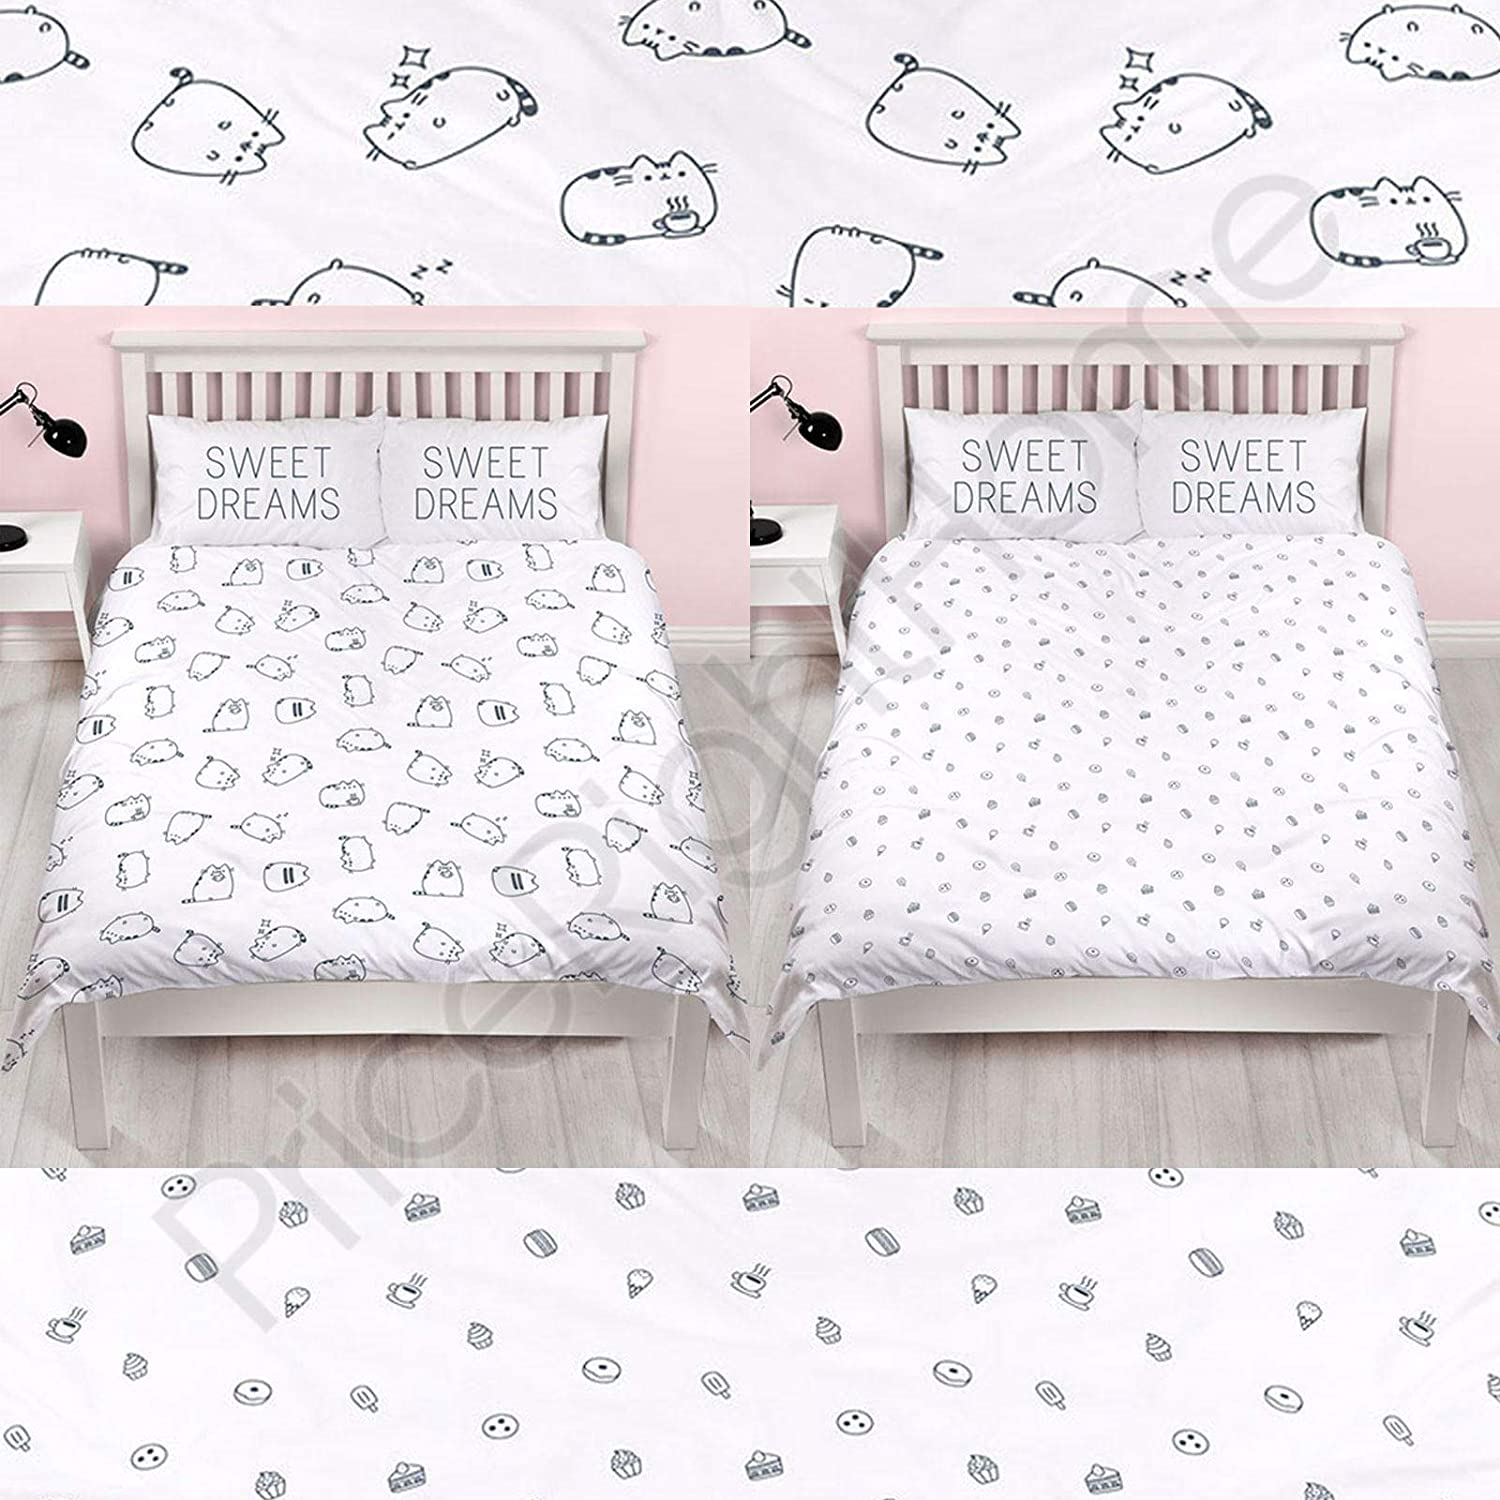 Buy Pusheen Sweet Dreams Design Duvet Cover Reversible Two Sided Official Bedding Duvet Cover With Matching Pillow Case Uk Double Us Full Online At Low Prices In India Amazon In